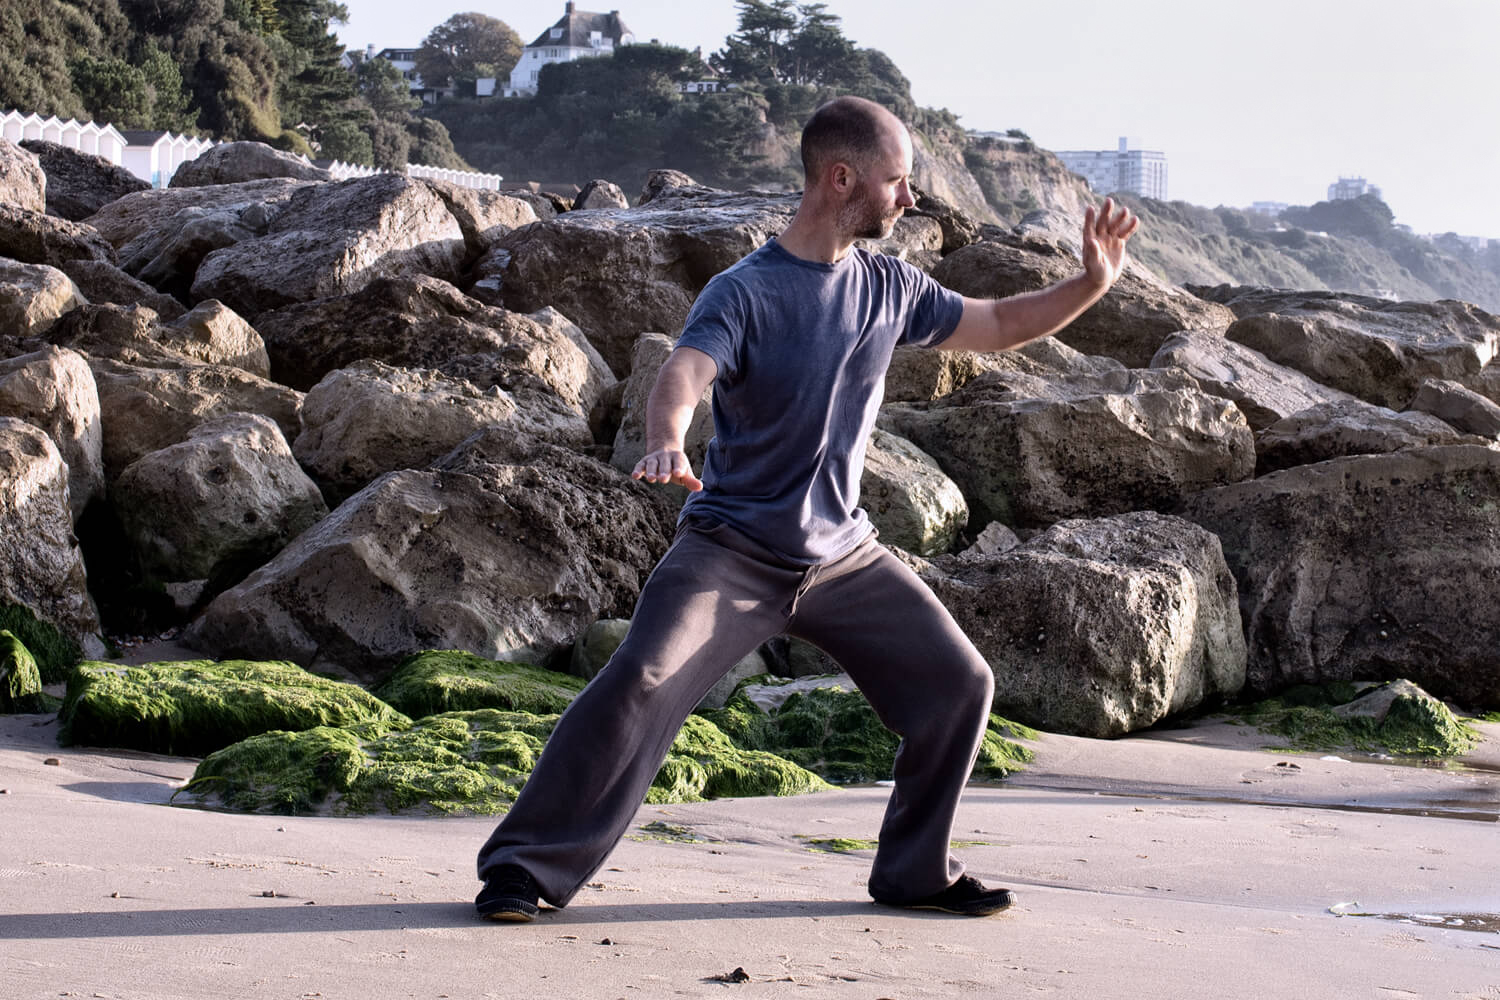 stuart-ward-tai-chi-on-the-beach.jpg